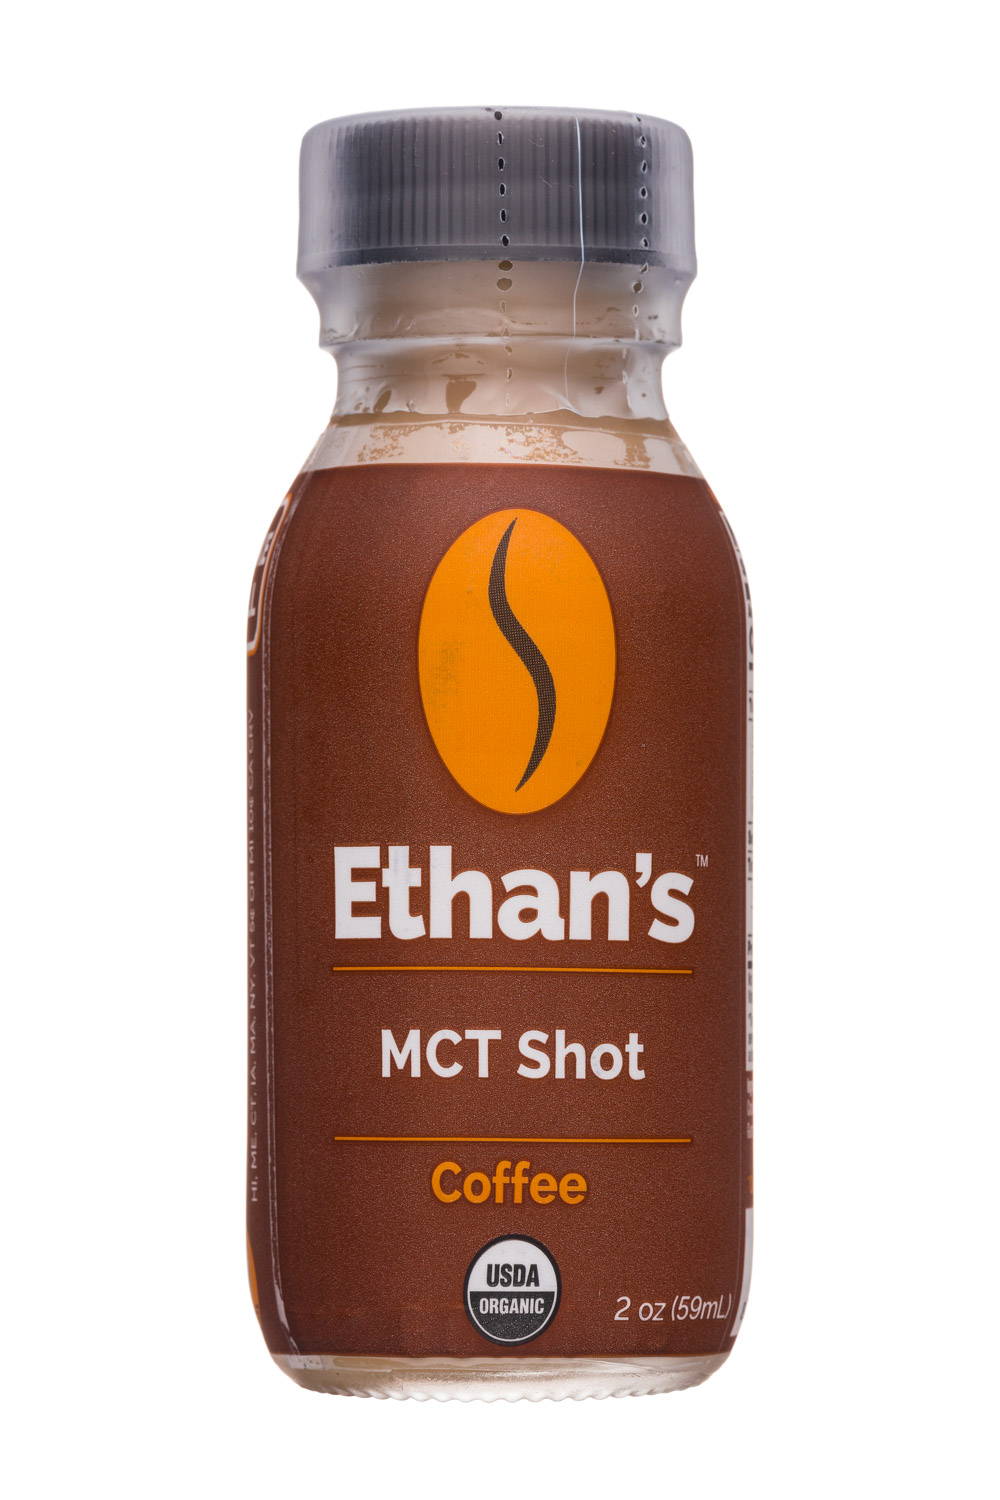 Ethan's MCT Shot: Ethans-2oz-MCTShot-Coffee-Front